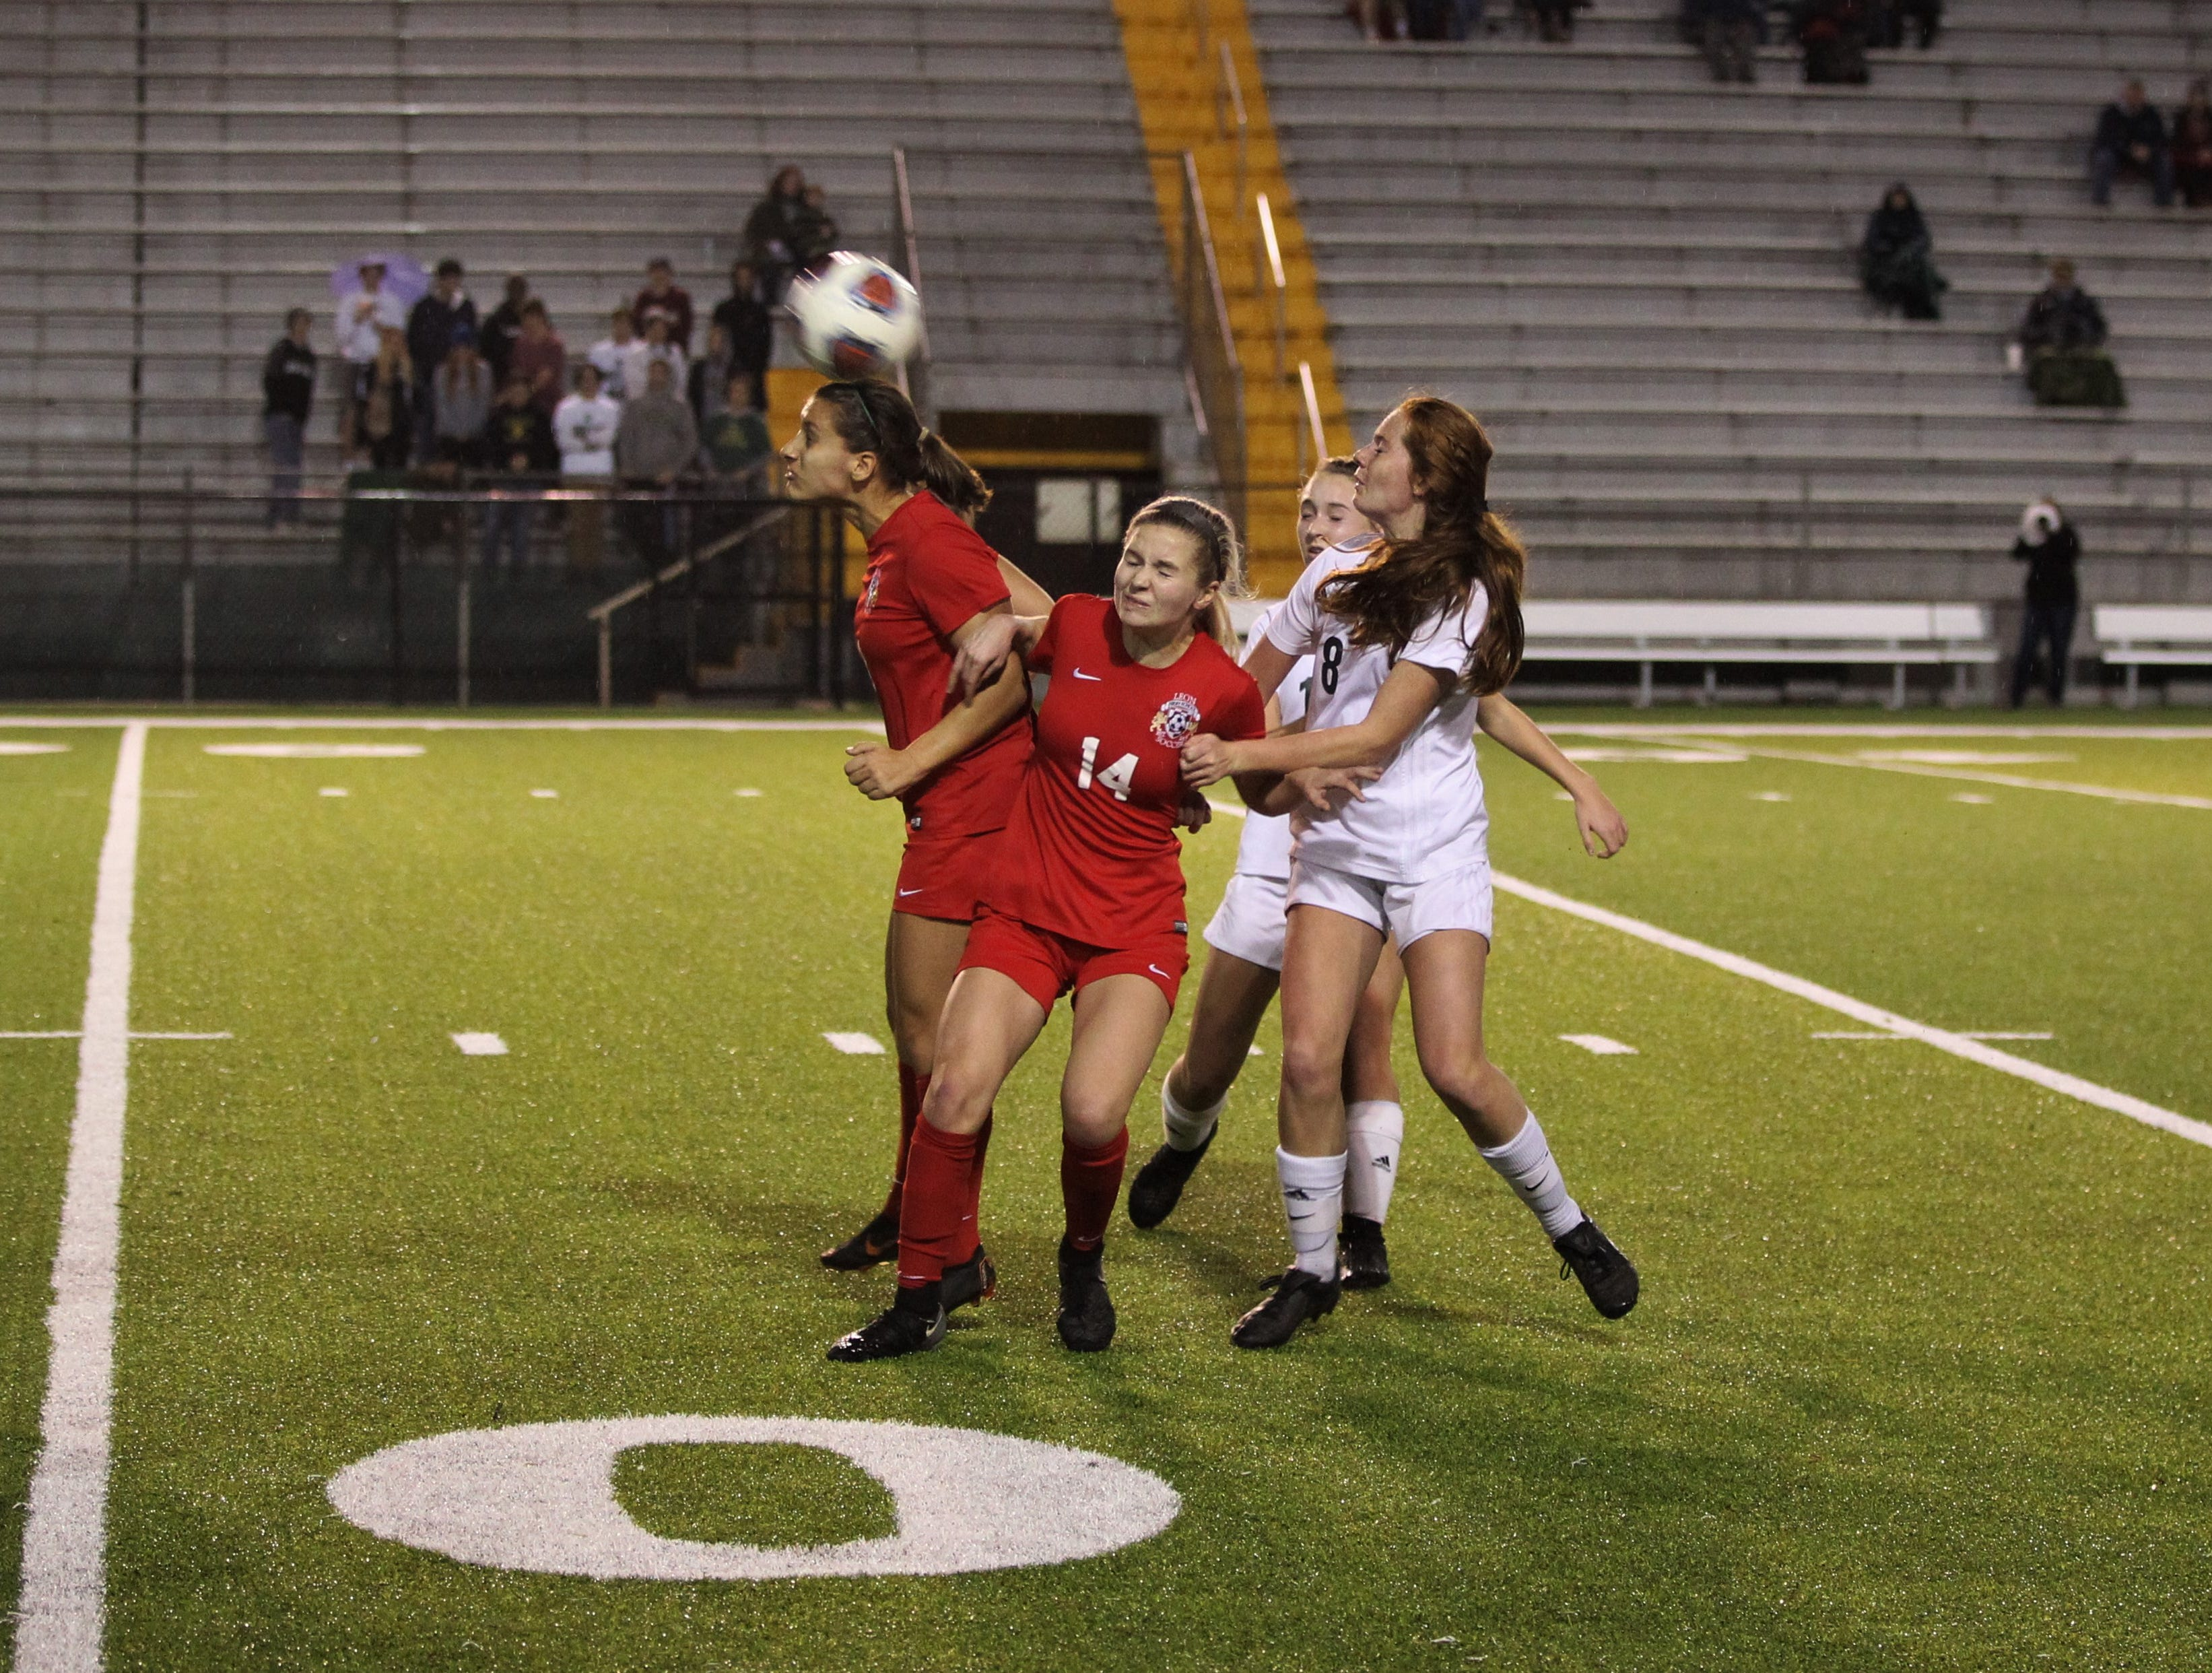 Leon's Eden Kirn flicks a header in traffic as Leon's girls soccer team beat Lincoln 2-1 in the District 2-4A championship at Gene Cox Stadium on Feb. 1, 2019.